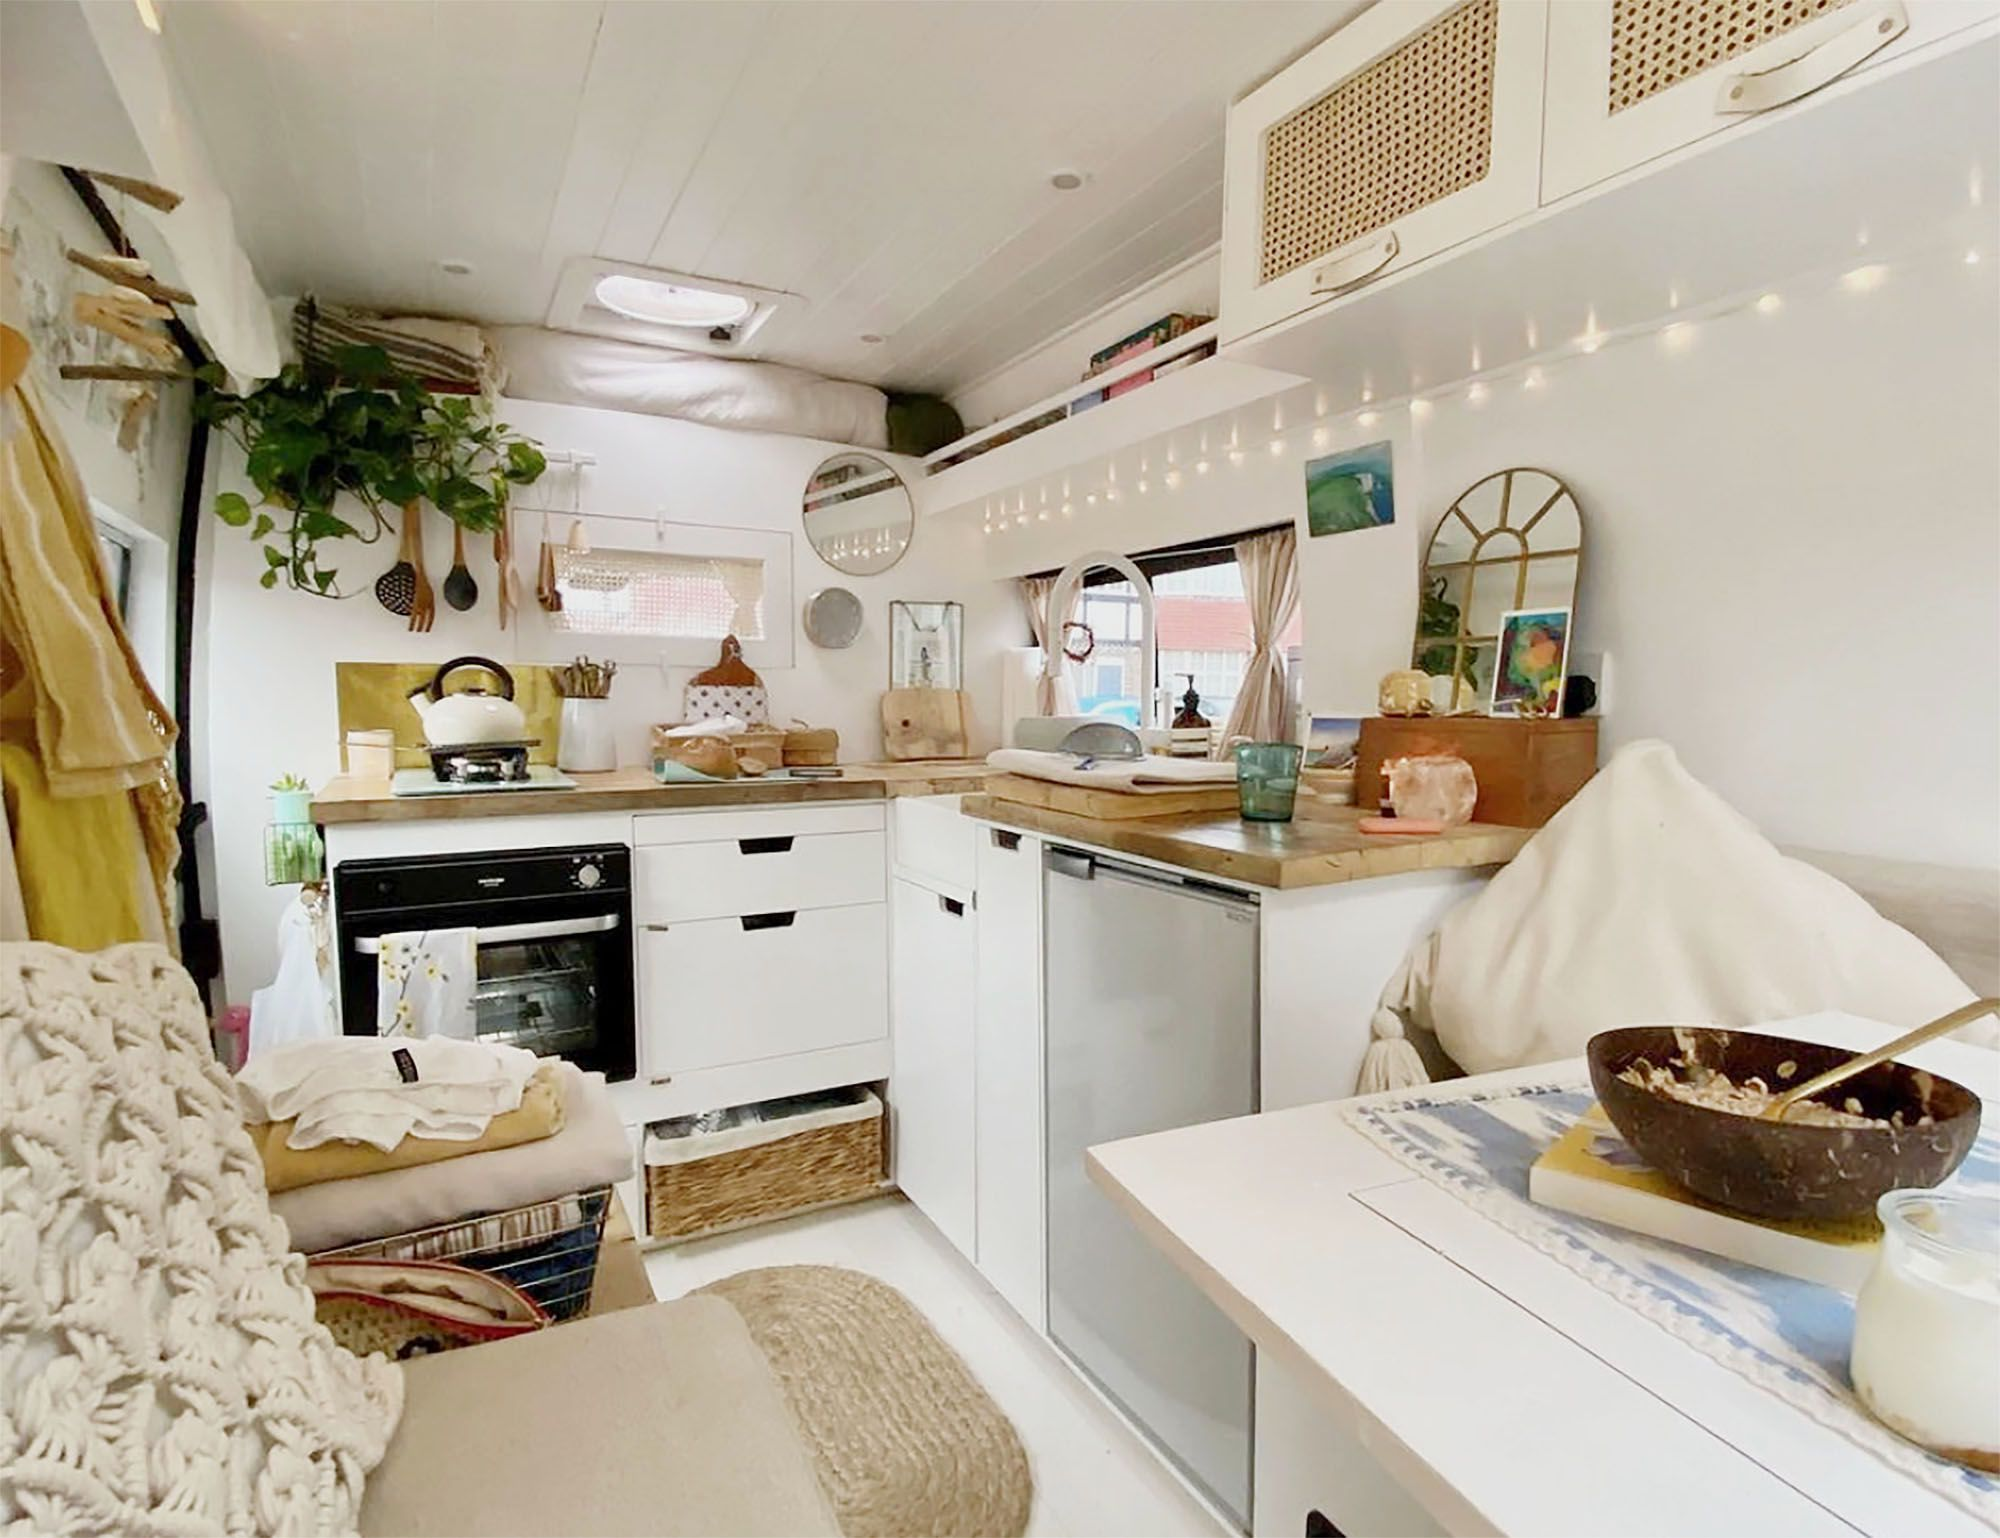 Woman's Charming Van Conversion Includes an Important Safety Feature